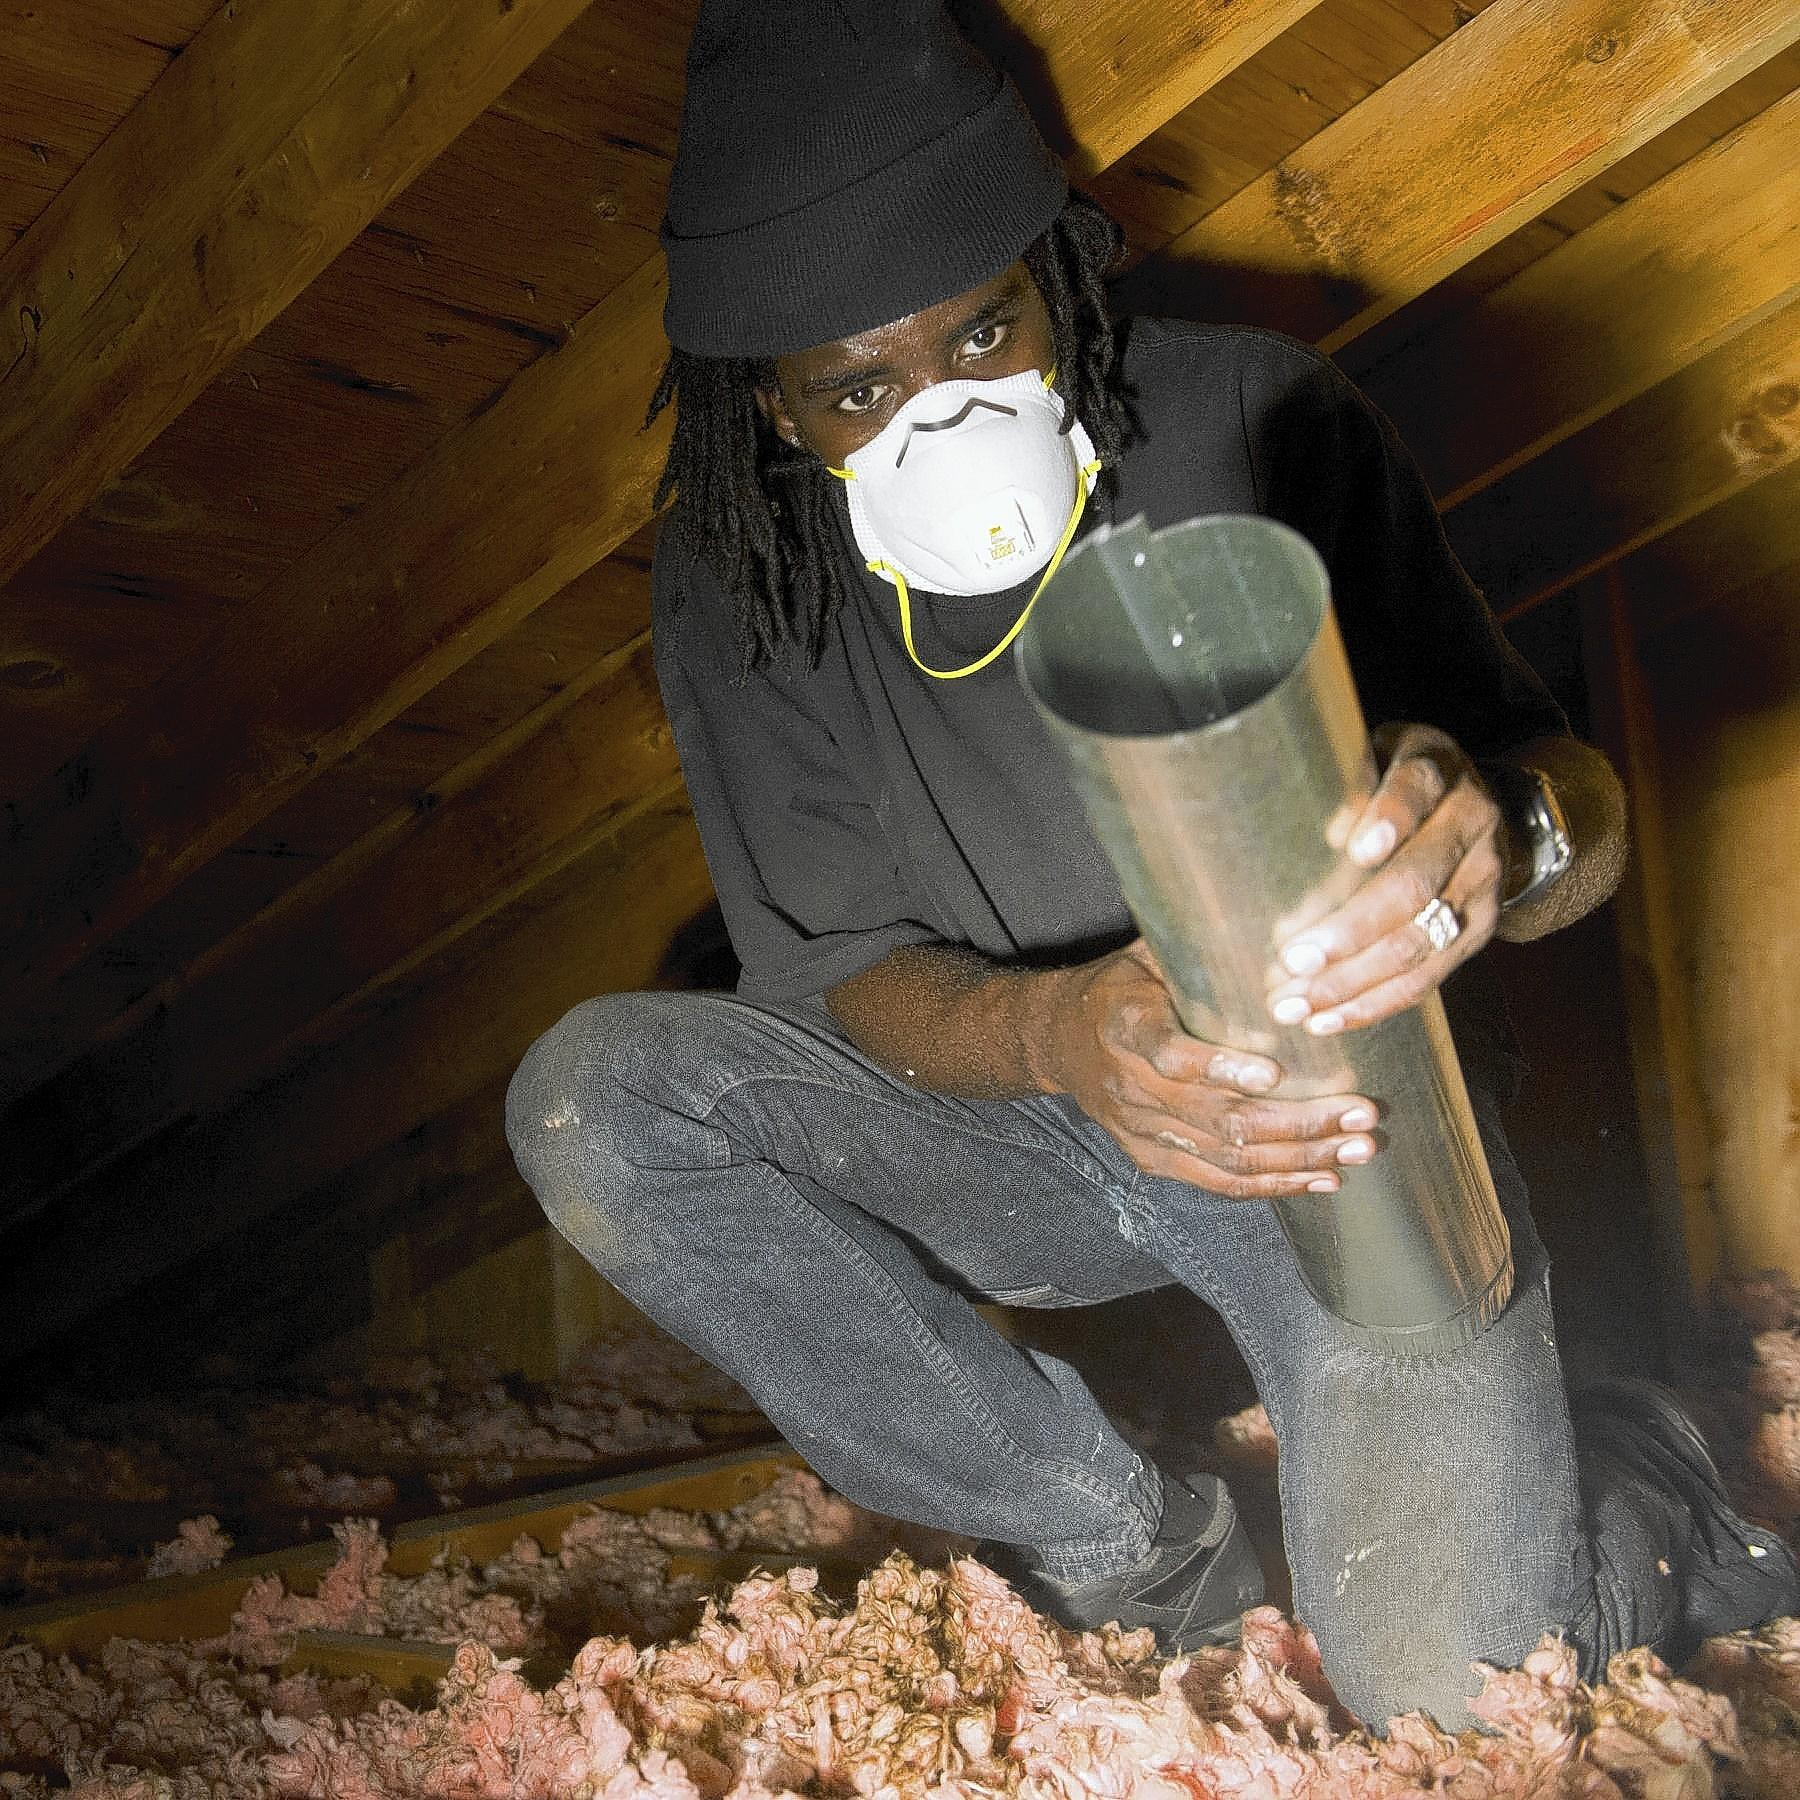 David King of Whitehall works in the attic of a home on Hastings Road in Bethlehem on Wednesday as part of a weatherization blitz of 20 townshouses organized by The Community Action Committee of the Lehigh Valley, PPL Electric Utilities and the network of partners.